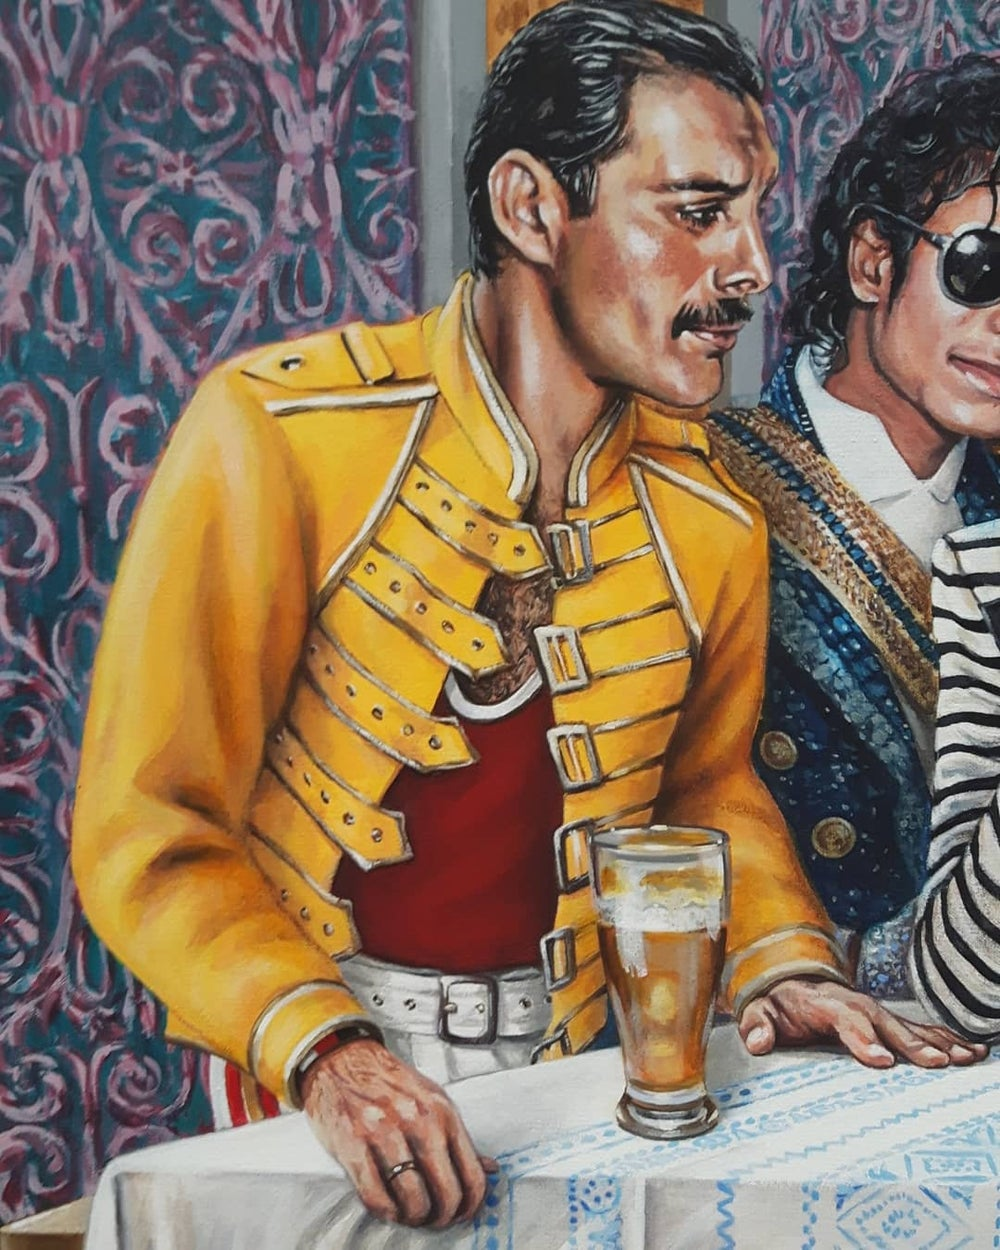 'Last Orders' by Leigh Banks (Limited Edition Prints)